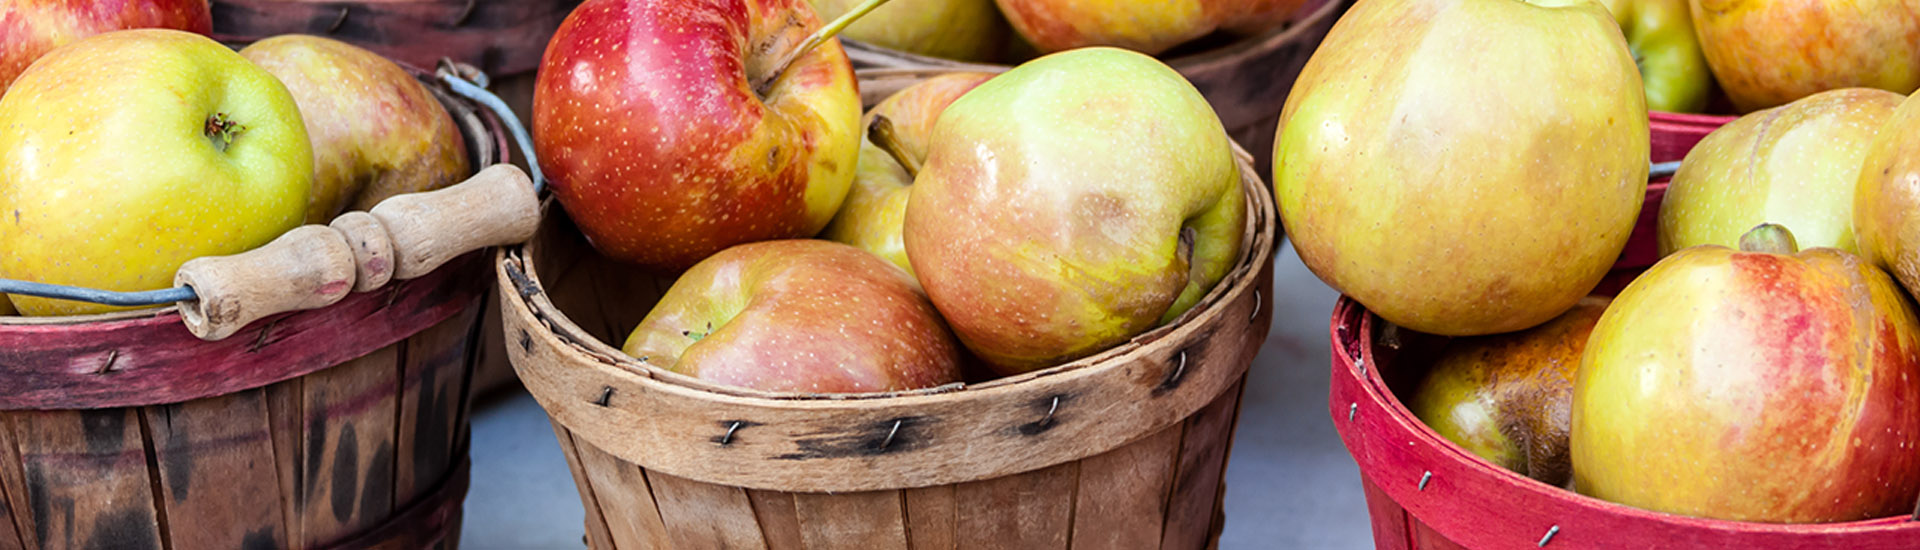 Apples_shutterstock_132281366_slider